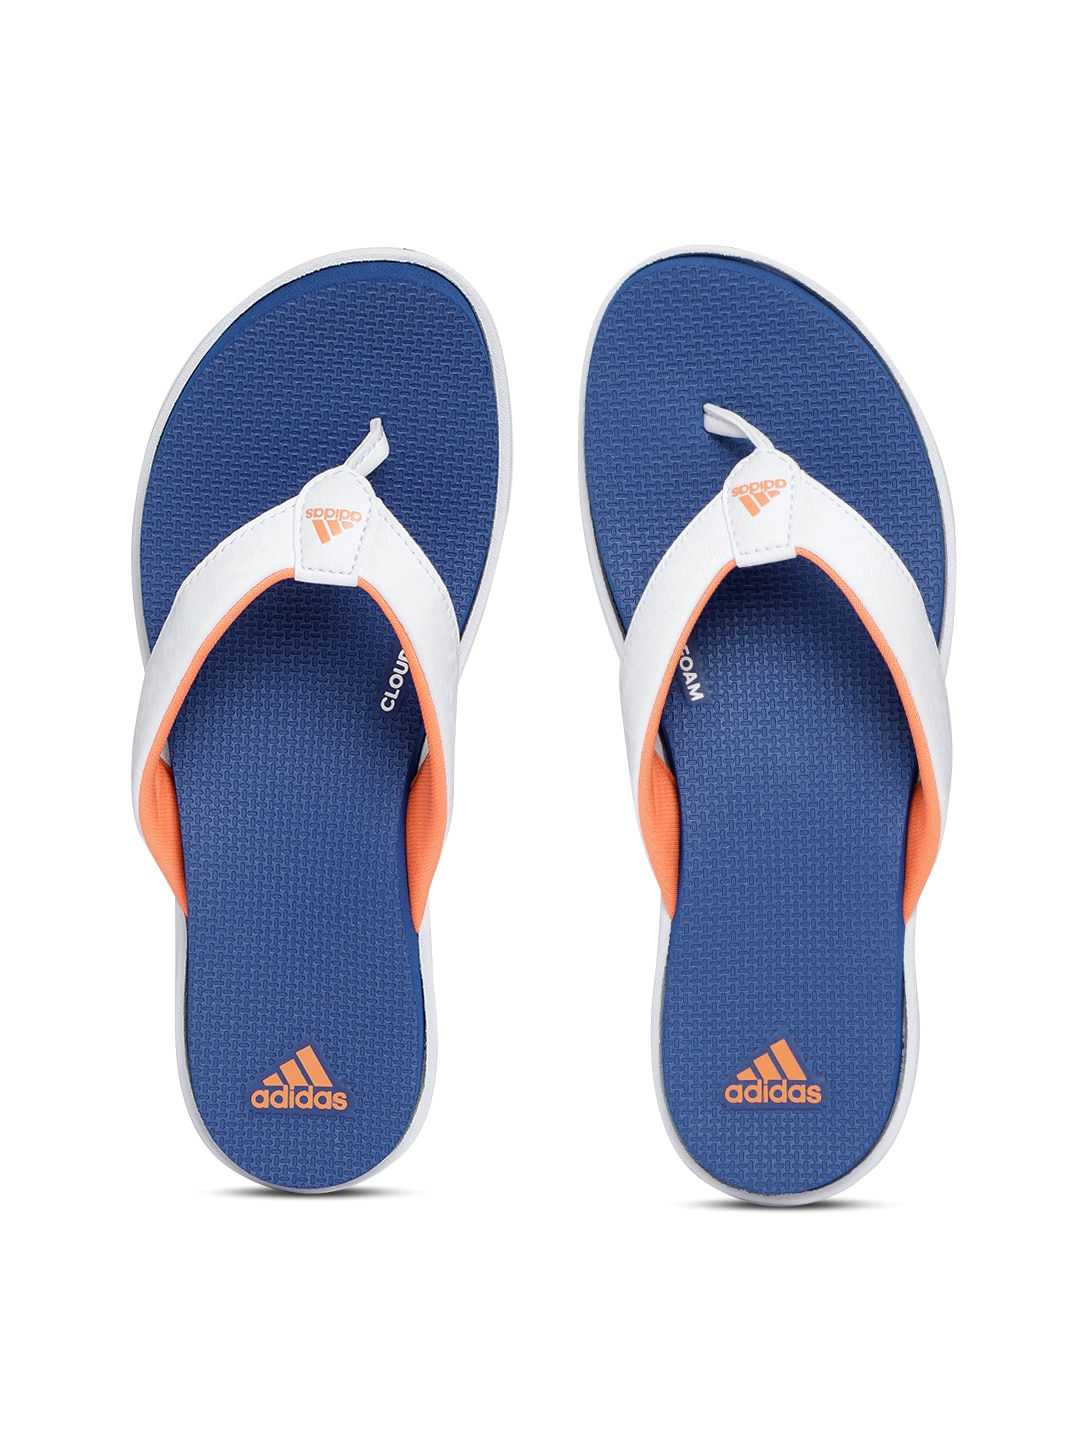 5be84e1095e5 Adidas Flip Flops Tracksuits Tights - Buy Adidas Flip Flops Tracksuits  Tights online in India